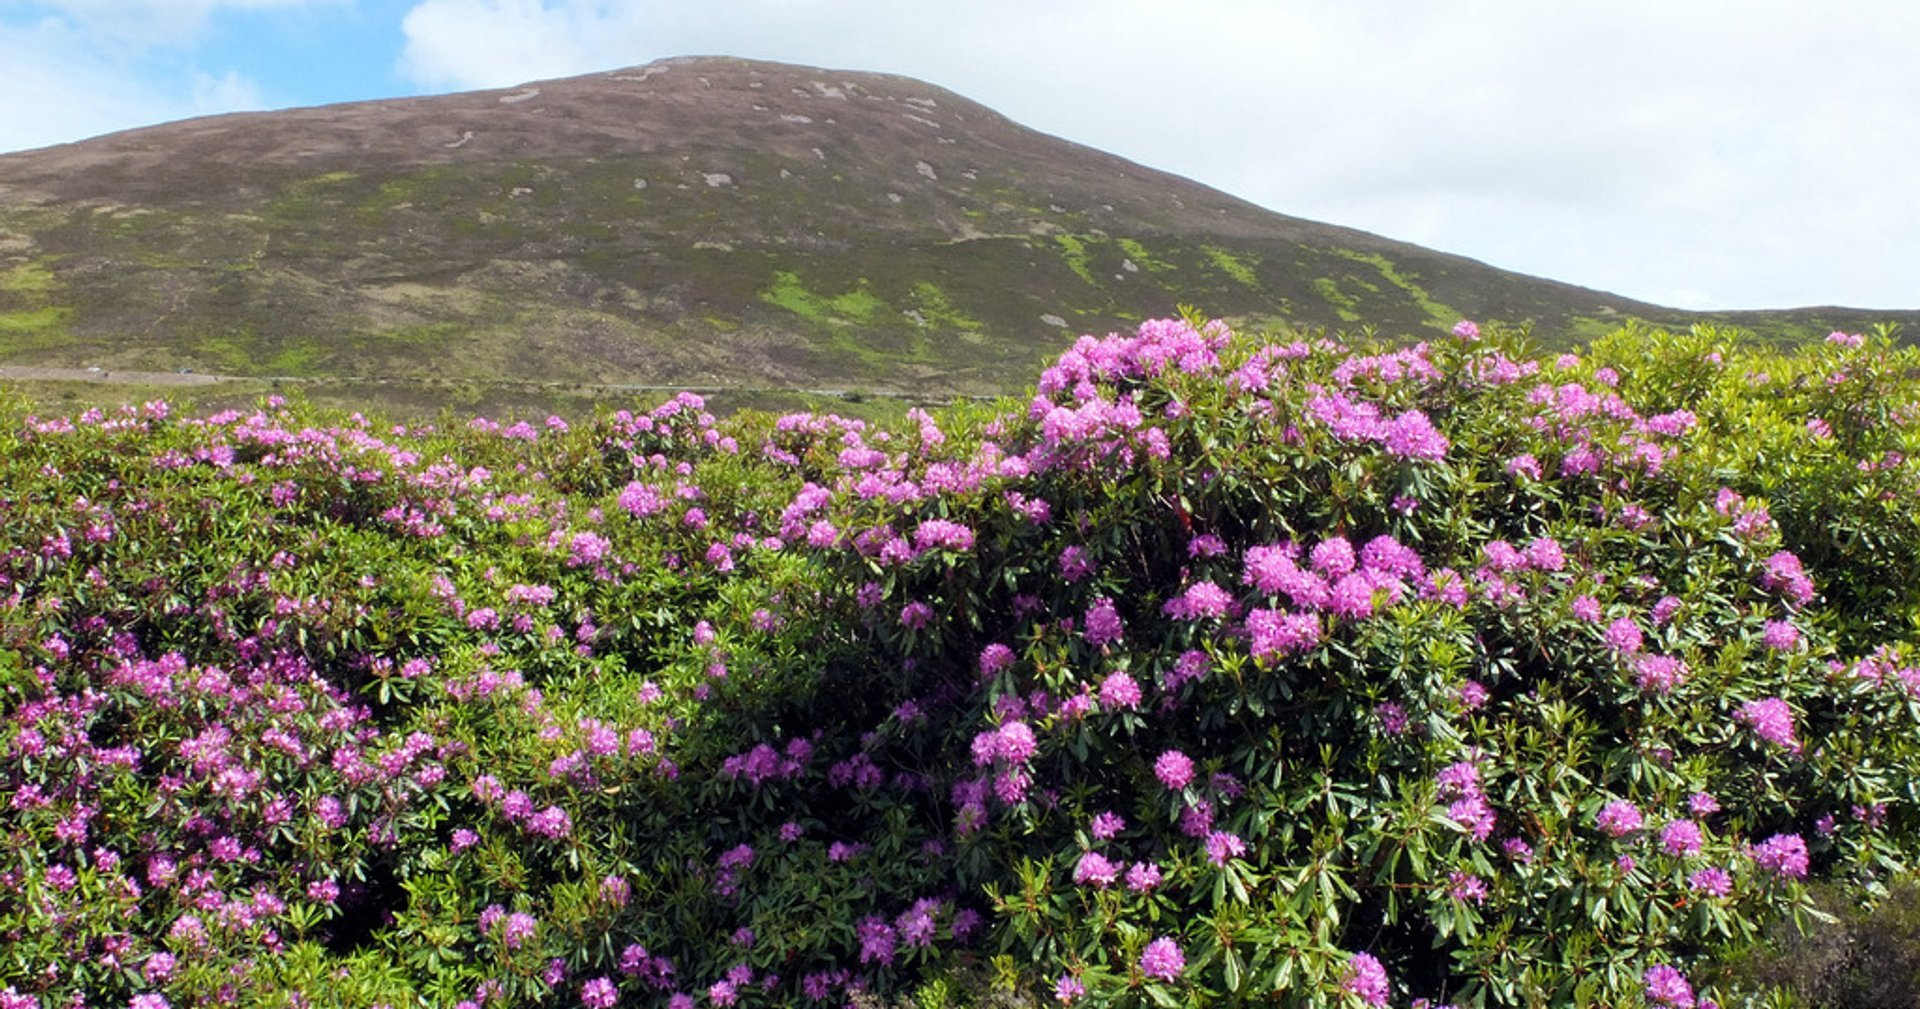 Vee Pass Rhododendrons in Ireland 2020 - Best Time